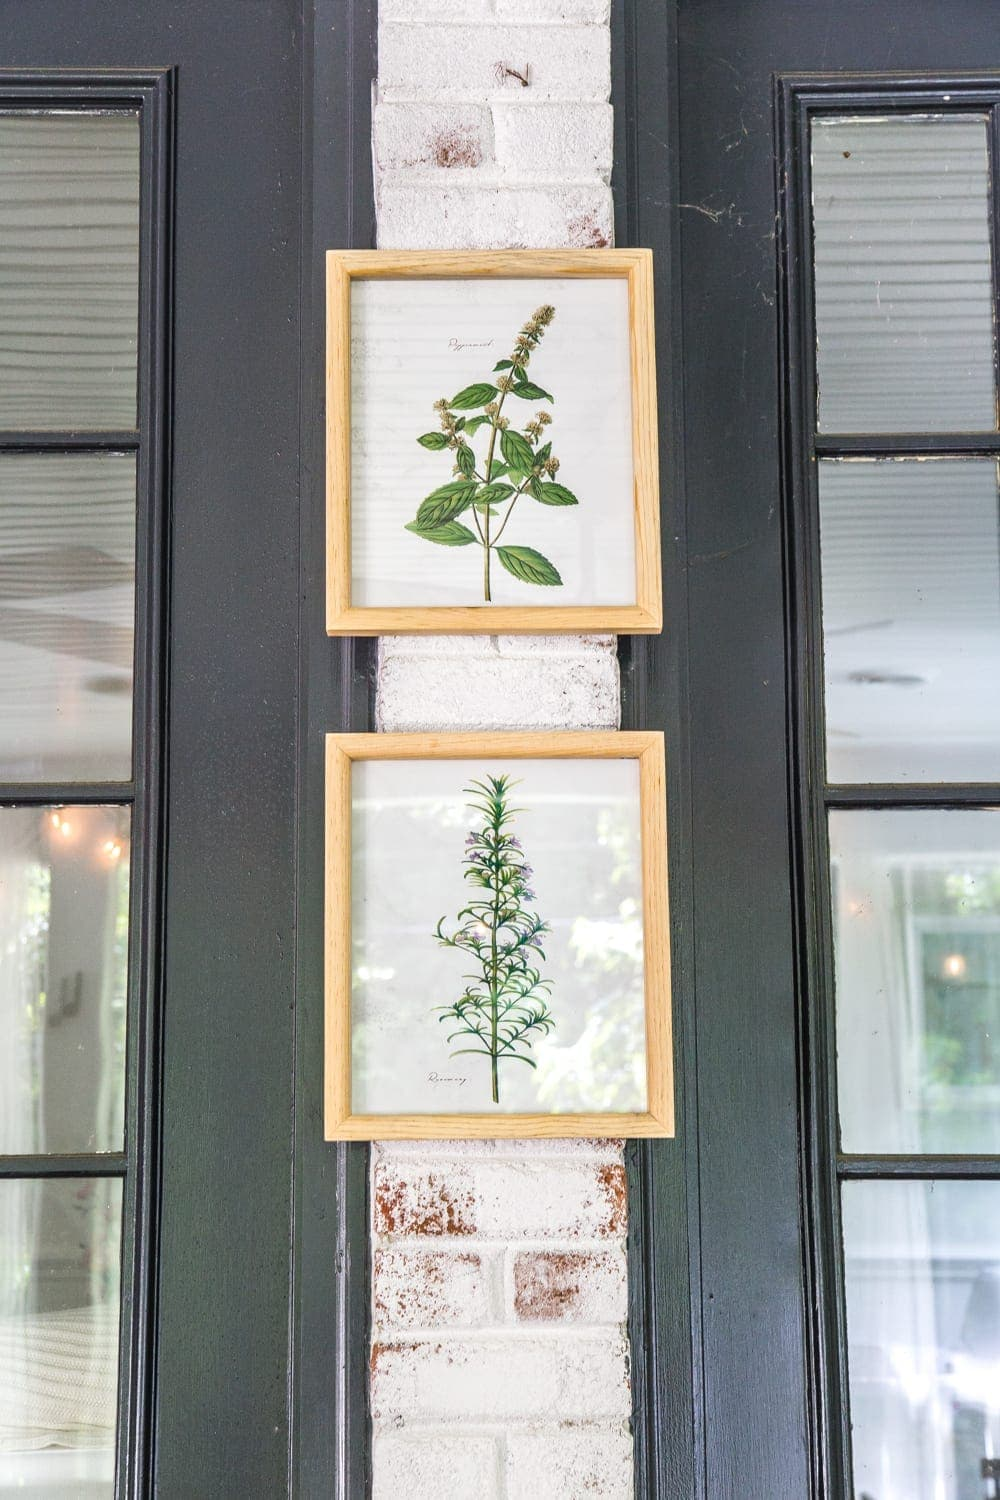 How to Hang Decor on Brick Without Damage